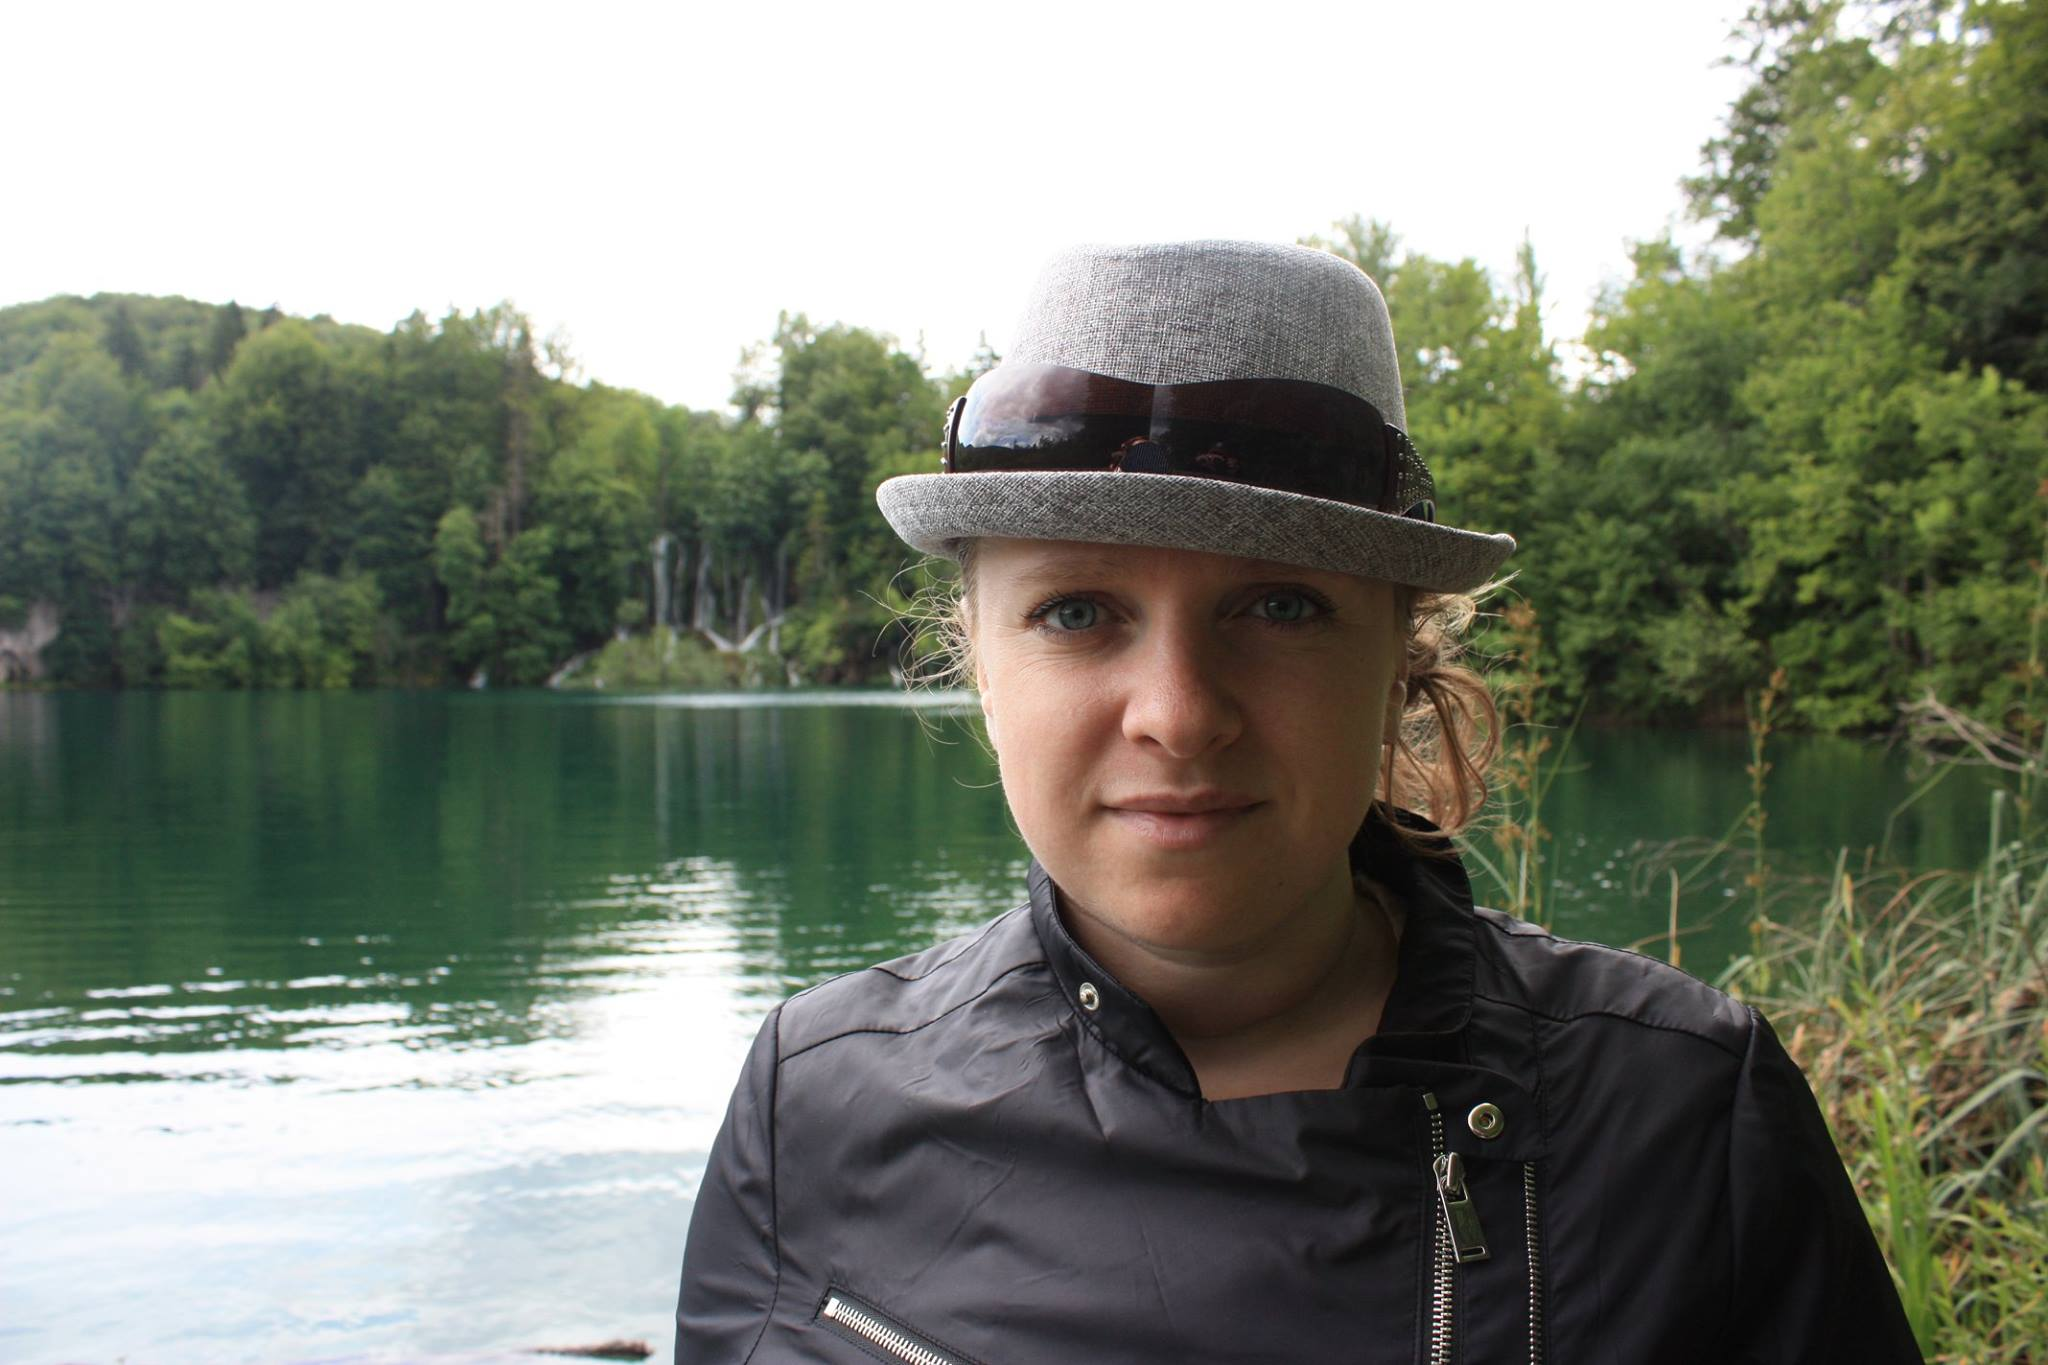 Image of Anna, owner of Olegana Travel Boutique, at Plitvice Lakes National Park in Croatia